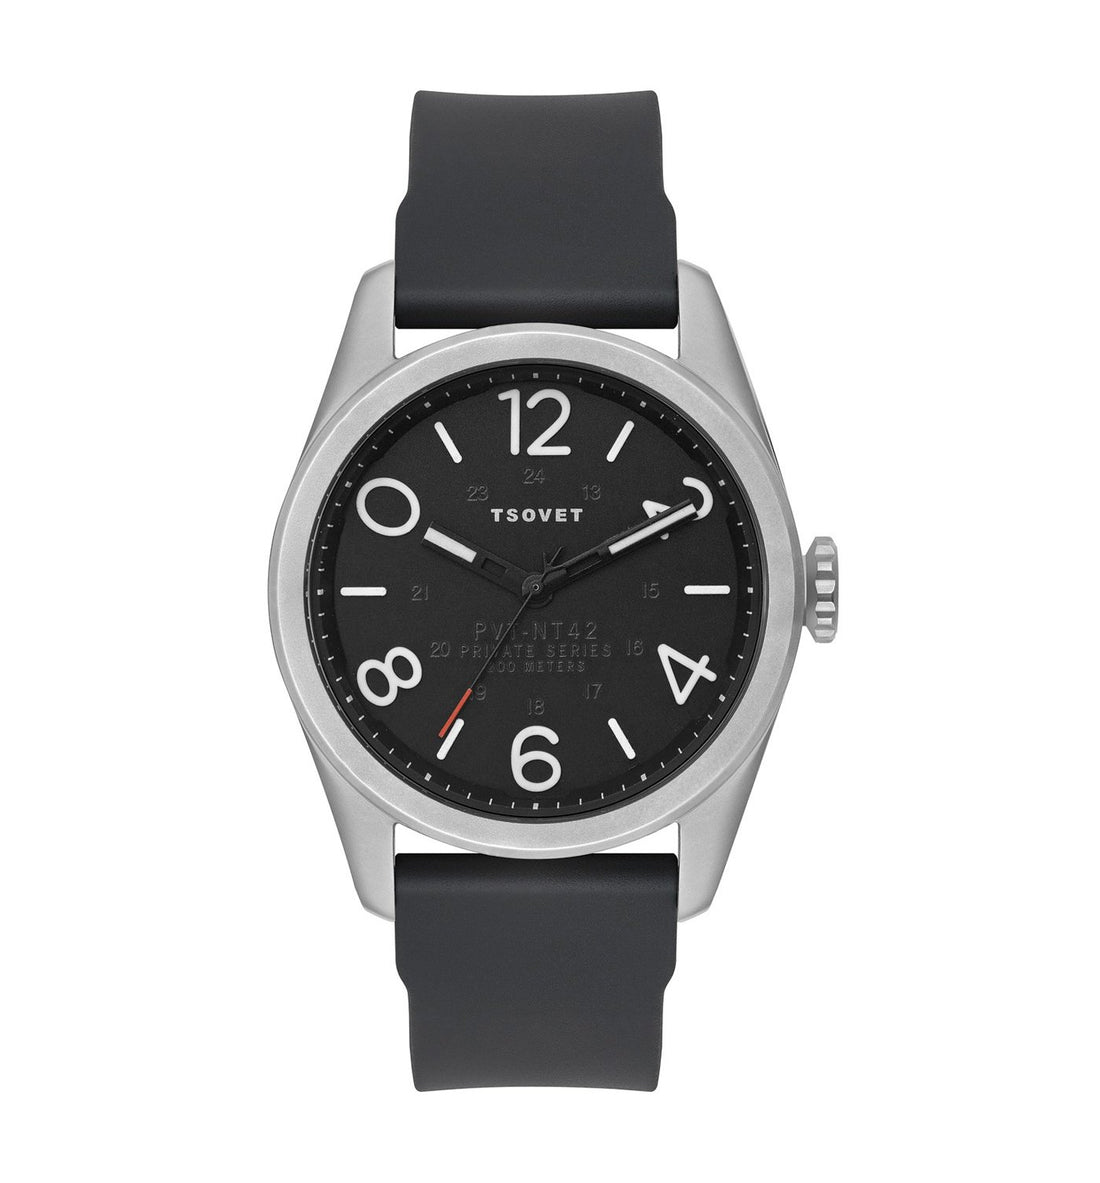 Tsovet JPT-NT42 - Watches - Iron and Resin